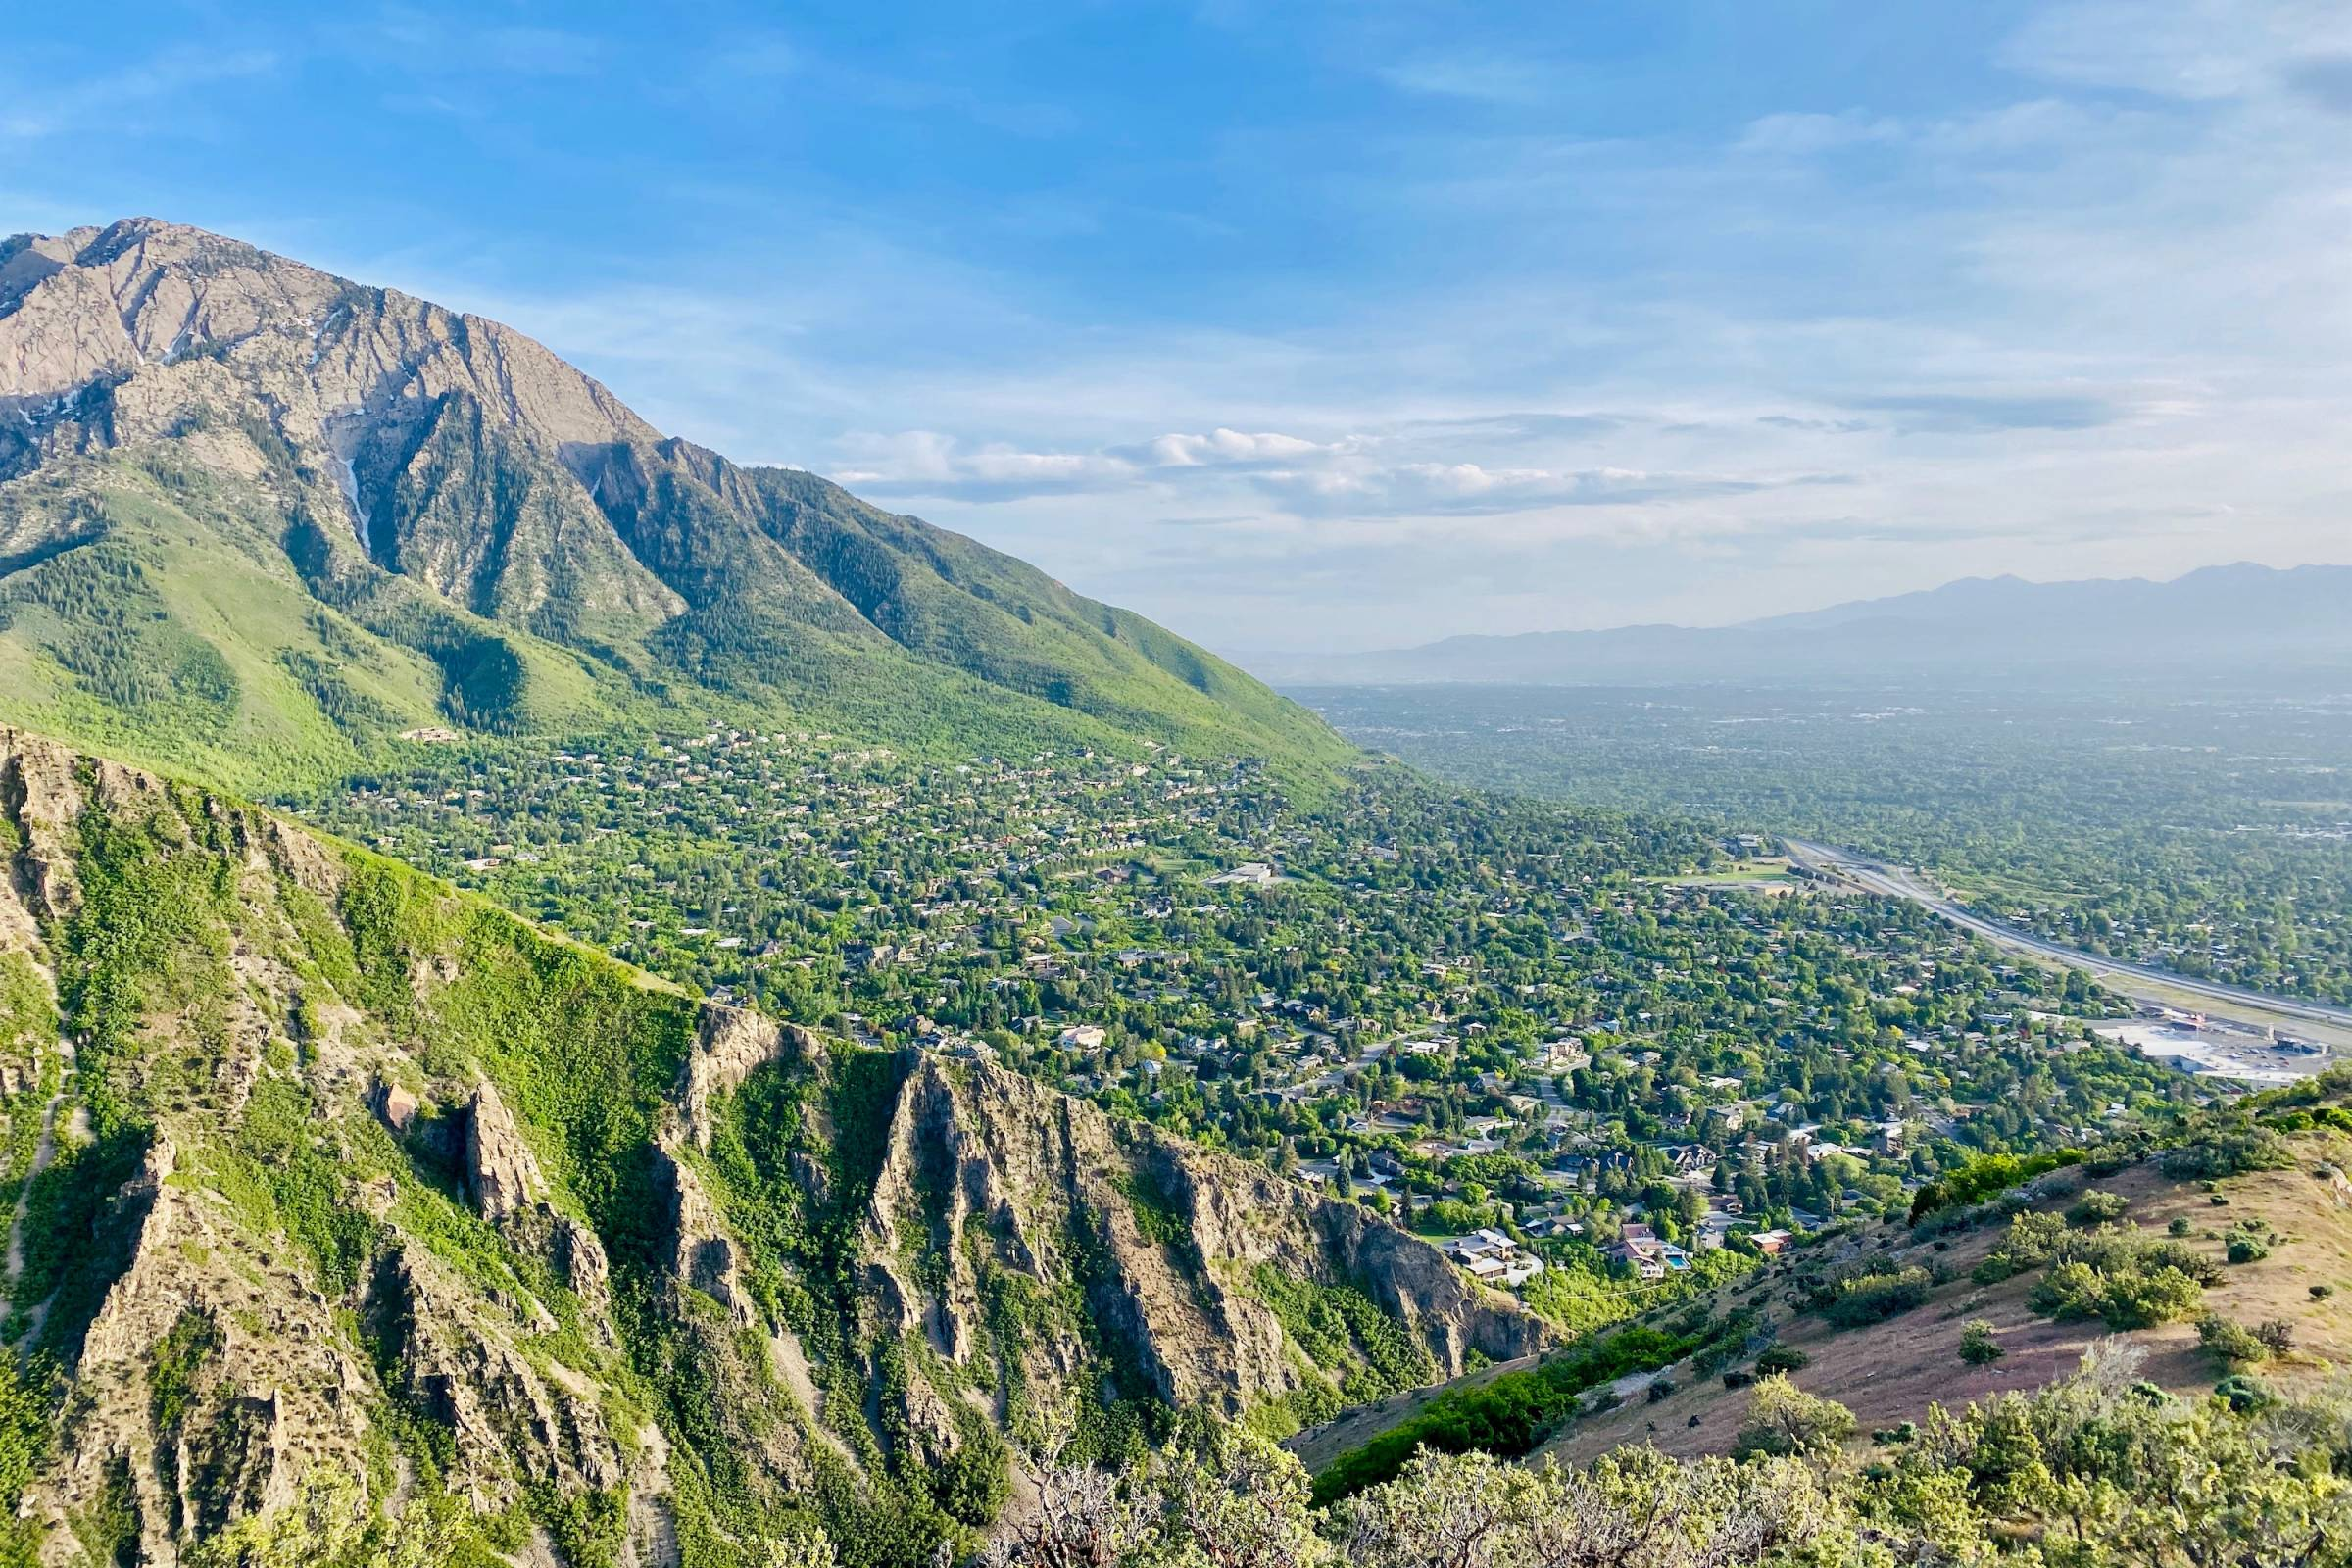 wide view of Salt Lake City, Utah during the daytime with bright green mountains and blue sky overhead